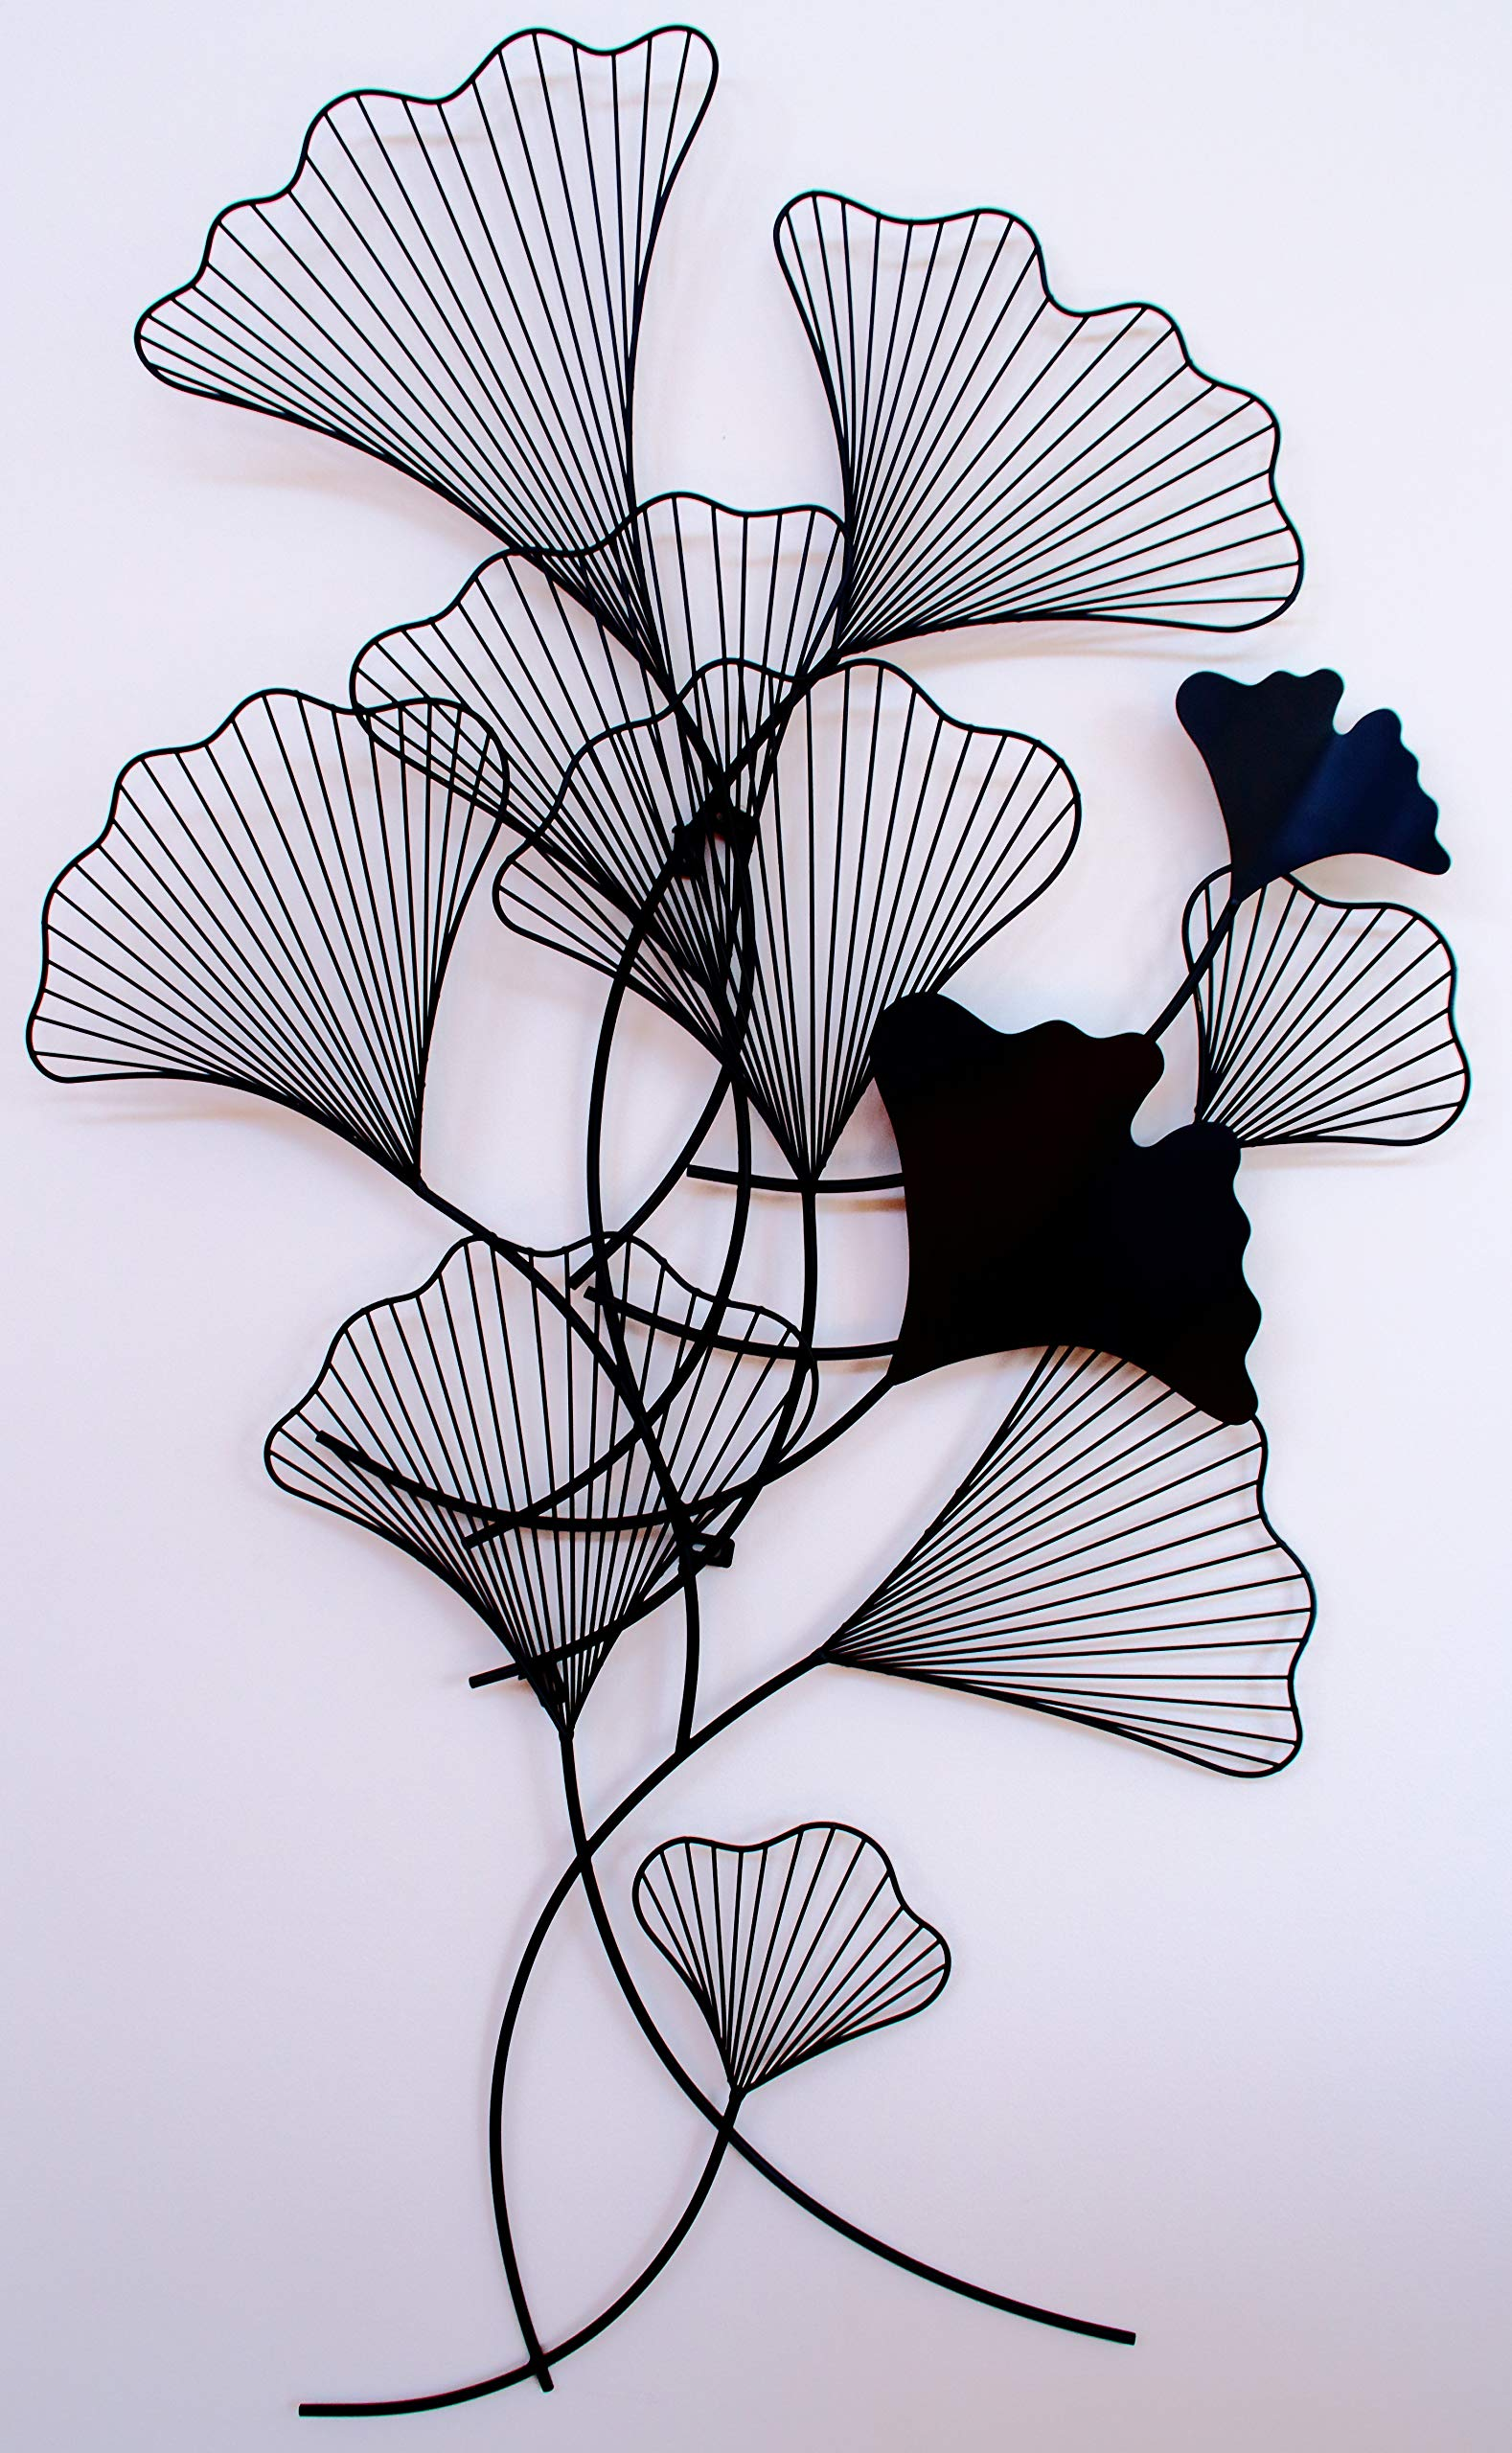 Chermoir Gingko Leaf Metal Wall Art Matte Black 55 x 31.5 x 2 inches - Ready to Hang by Chermoir